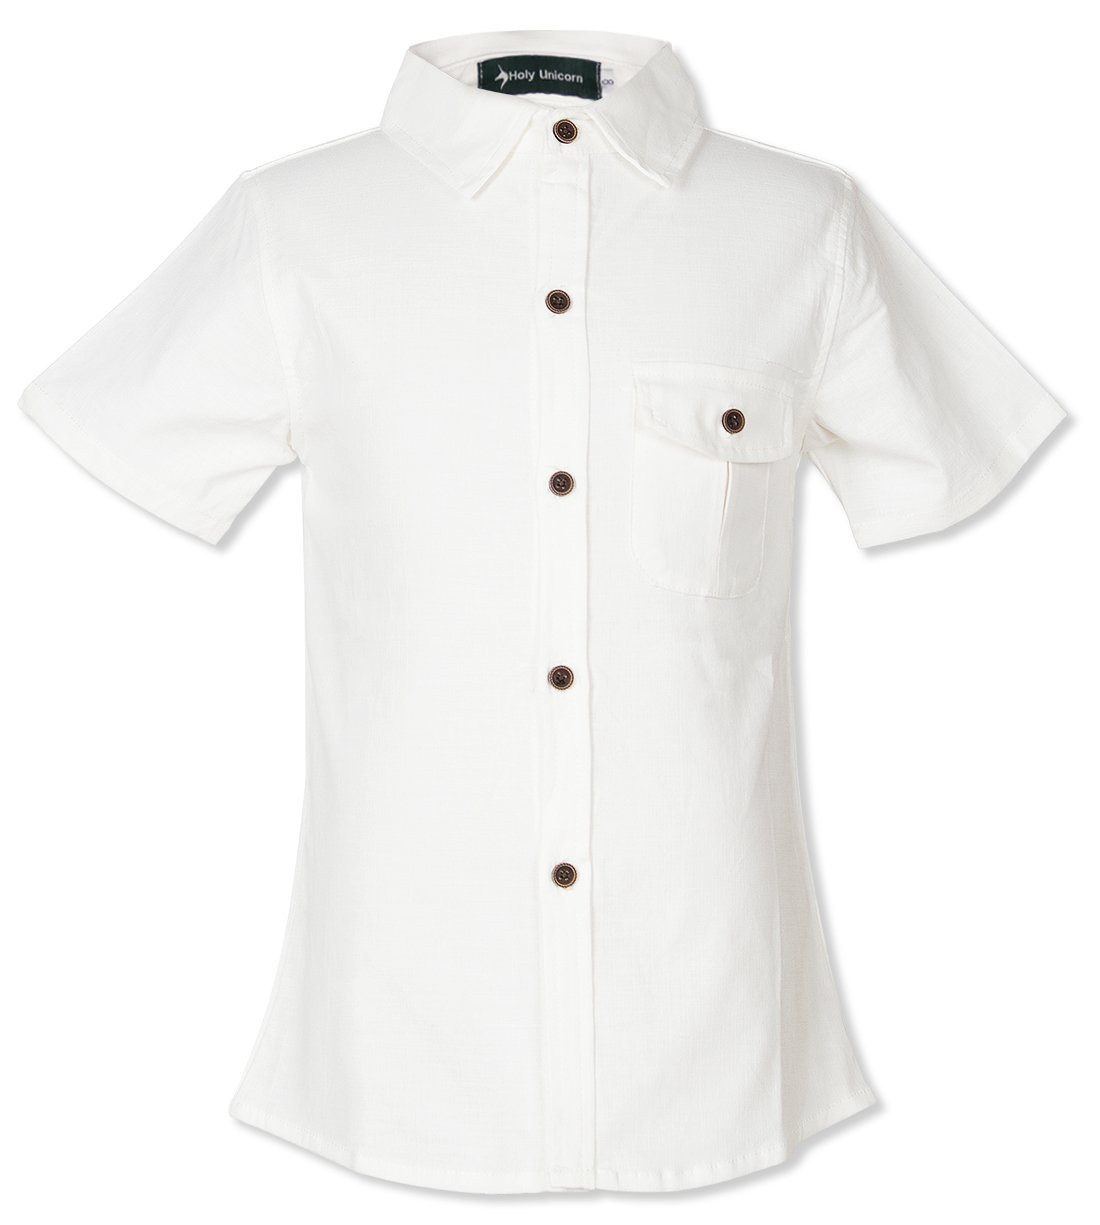 Holy Unicorn Solid Cotton Button Down Shirts For Todder Boys Short Sleeve Size 3-4 Off White